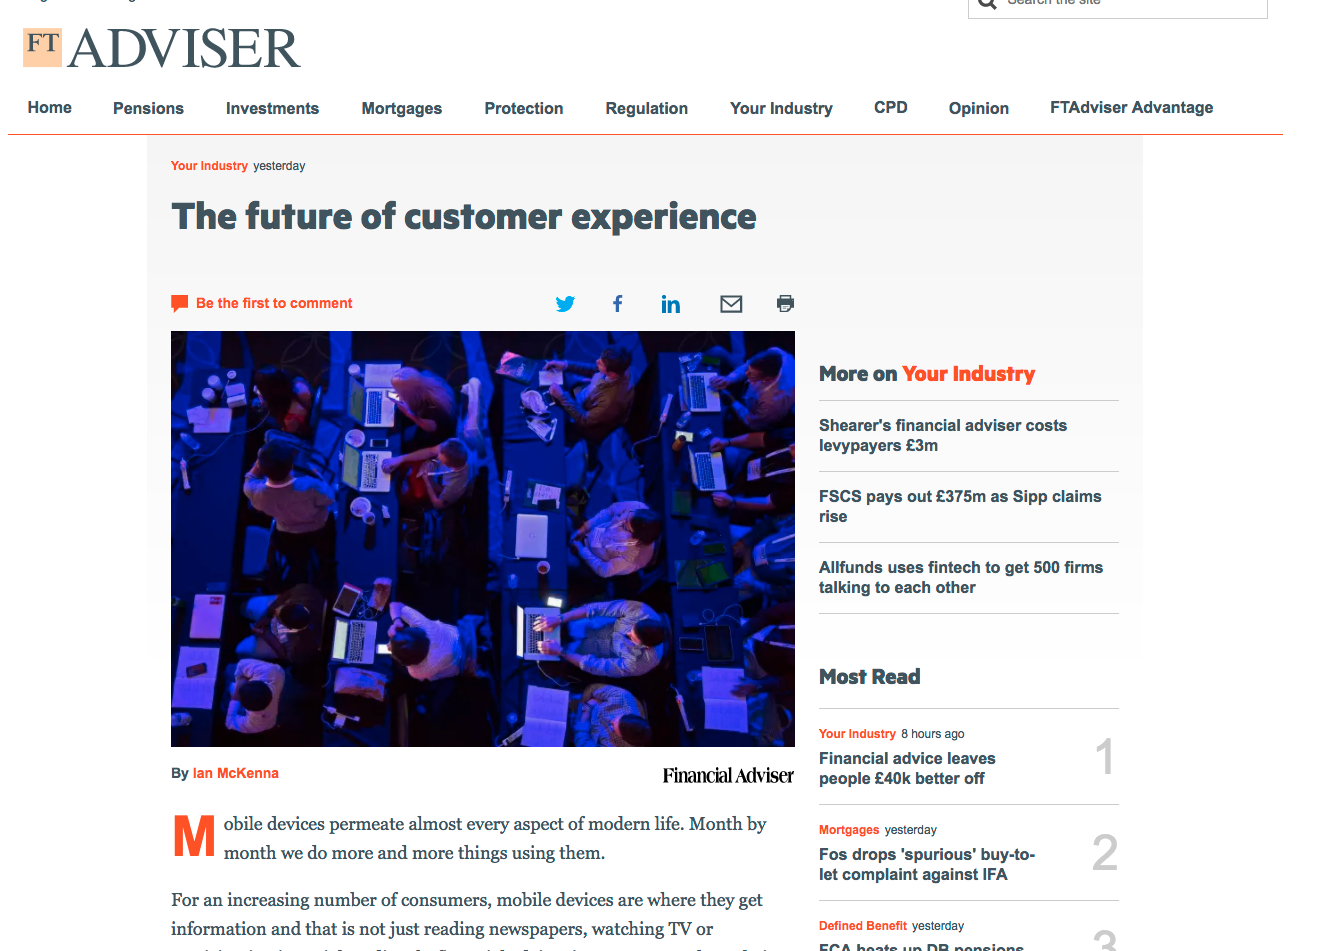 FT Adviser – the future of customer experience